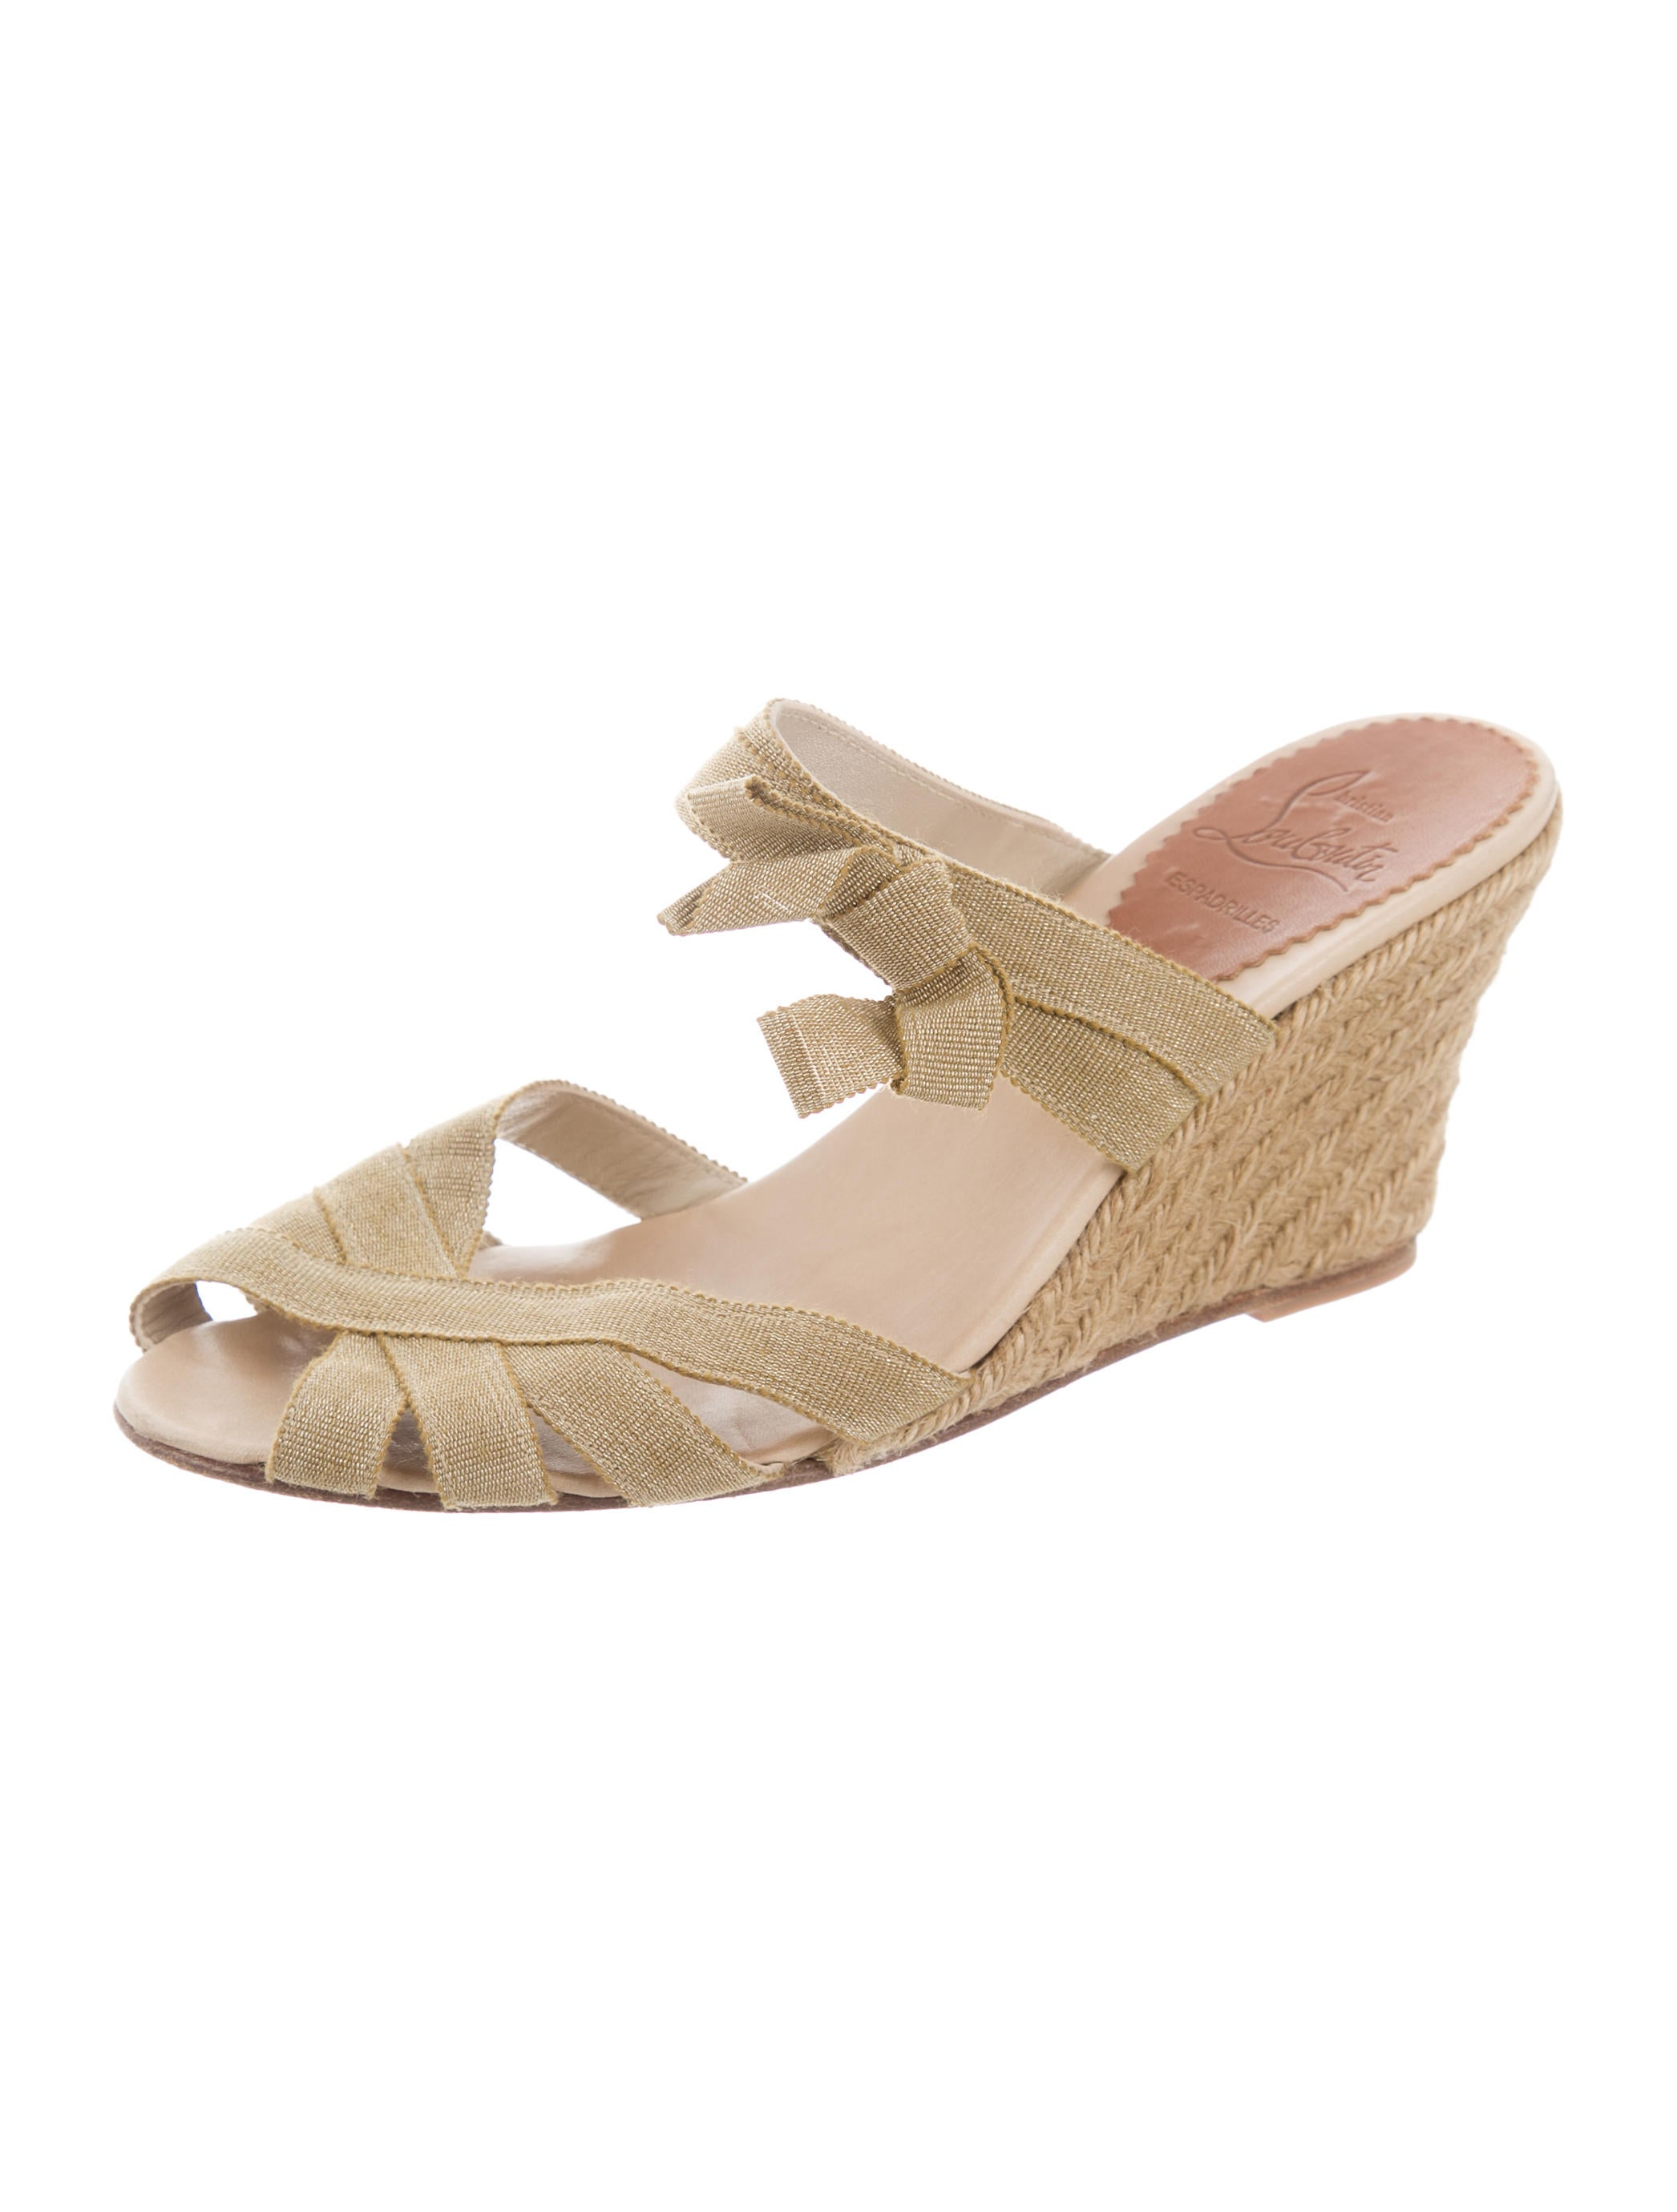 sale low shipping fee Christian Louboutin Bow-Embellished Espadrille Wedges clearance amazing price cheap sale official clearance under $60 hsk8TsYLE